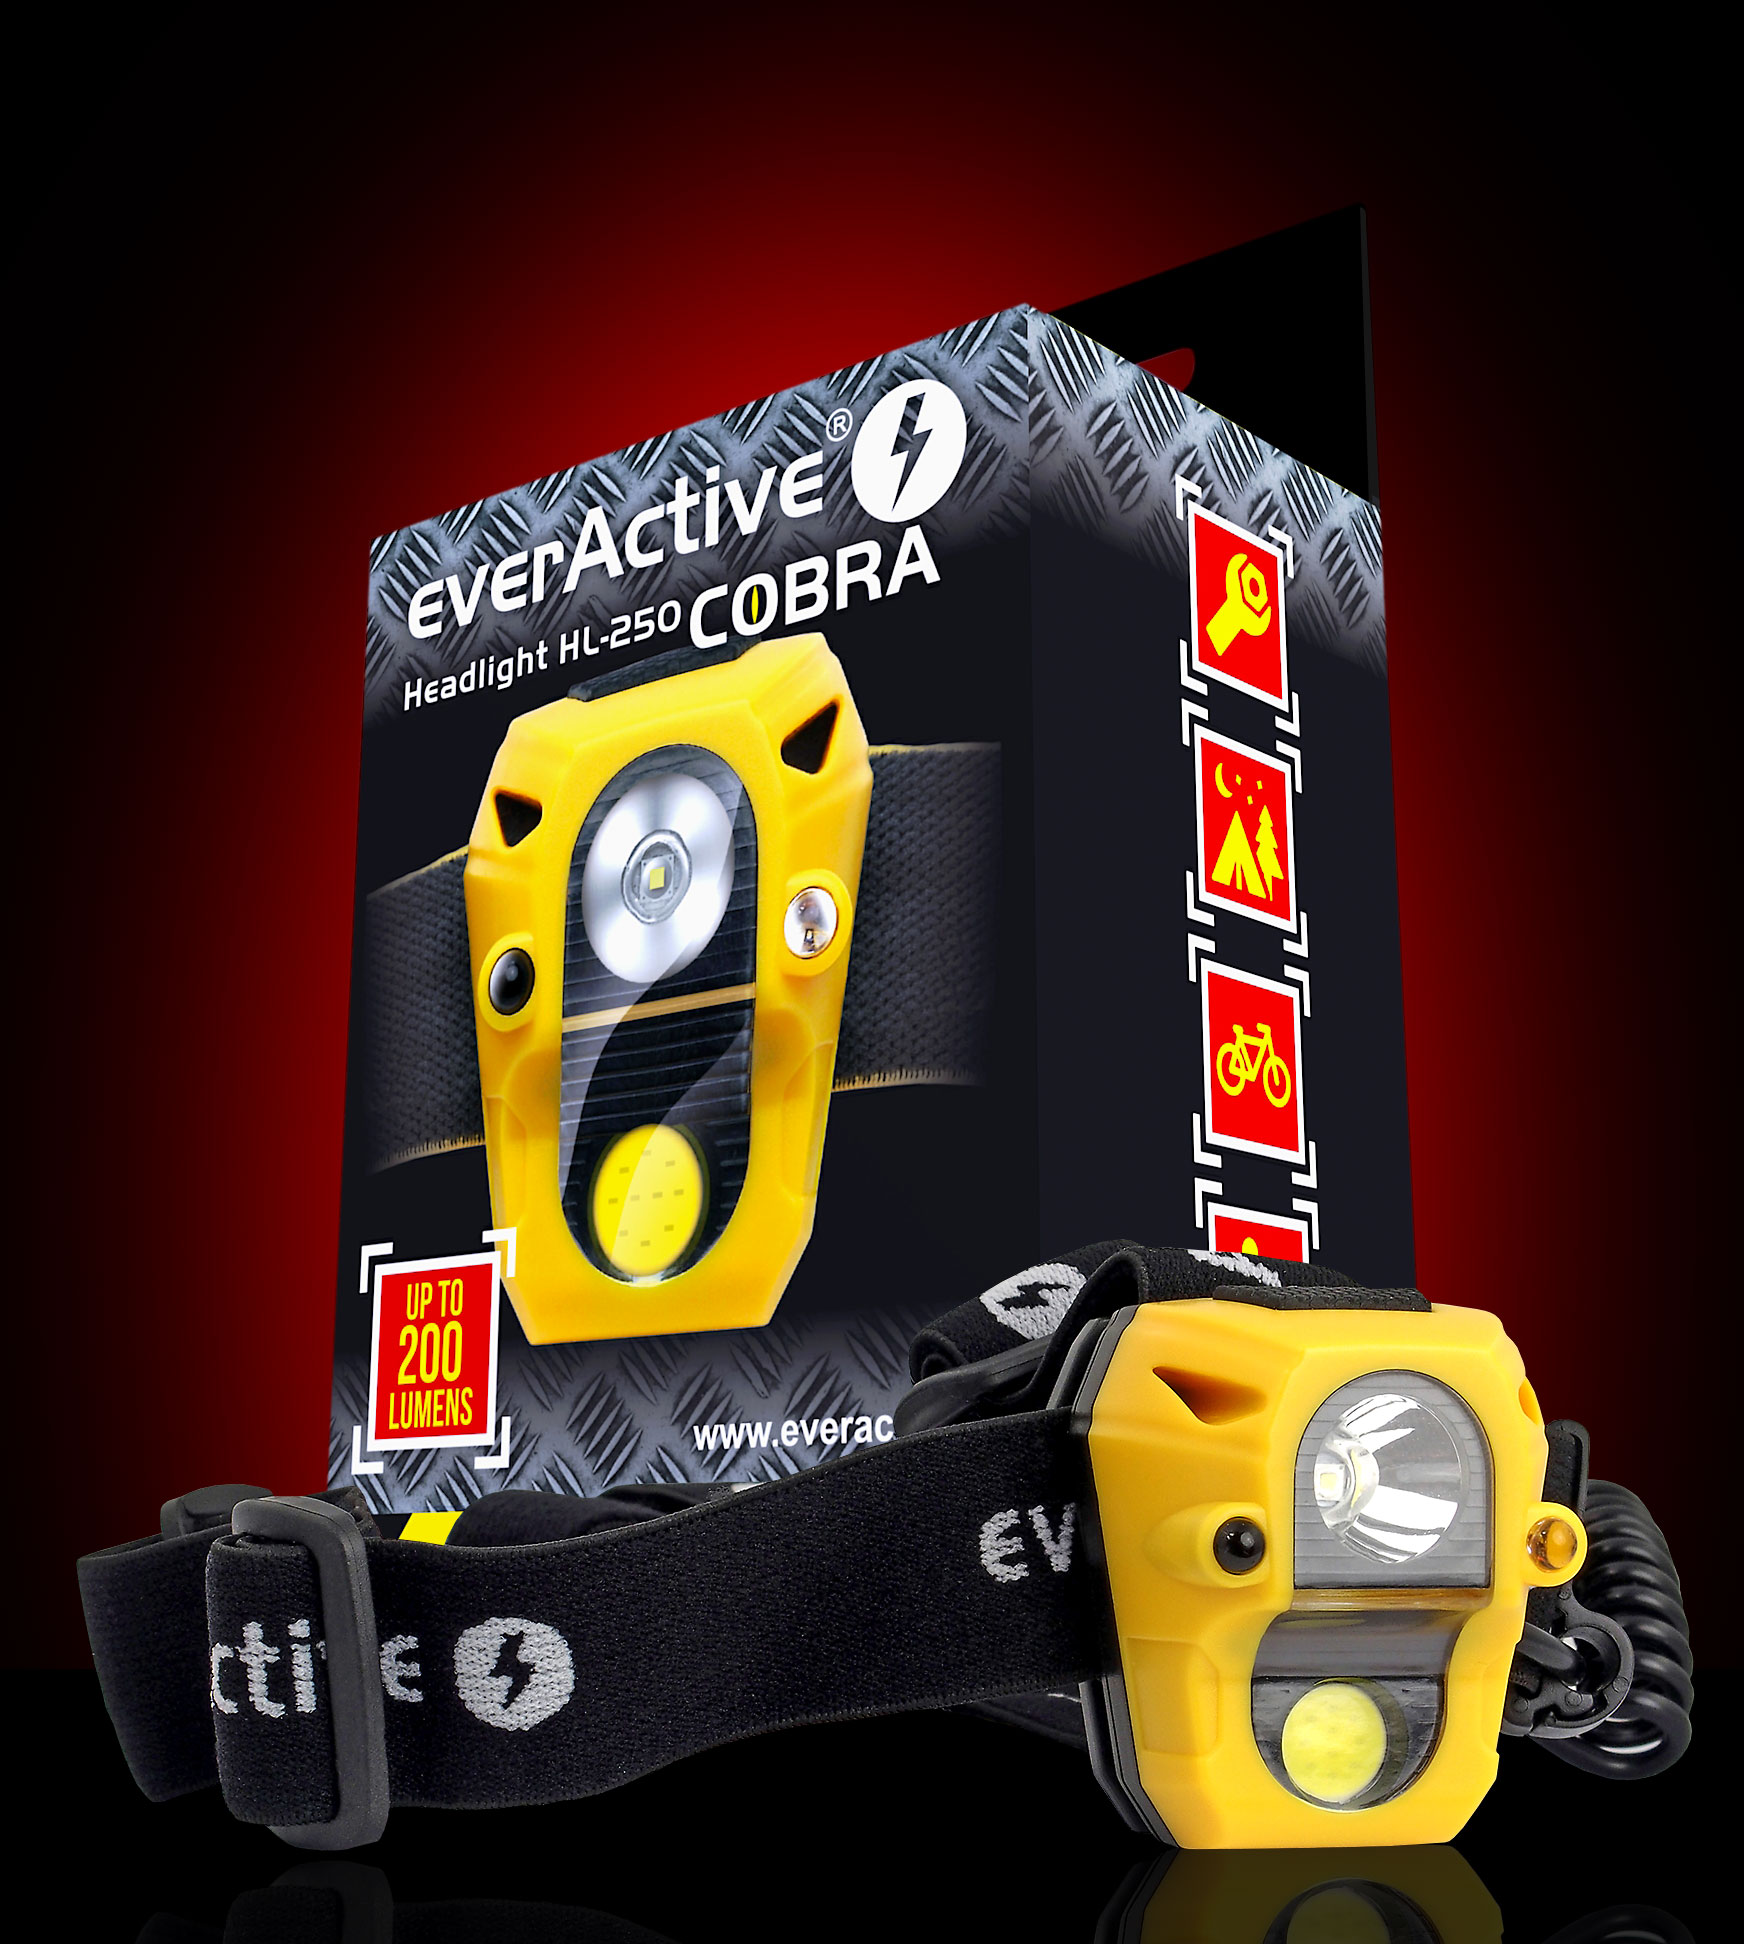 everActive new Cobra HL-250 headlight with giftbox